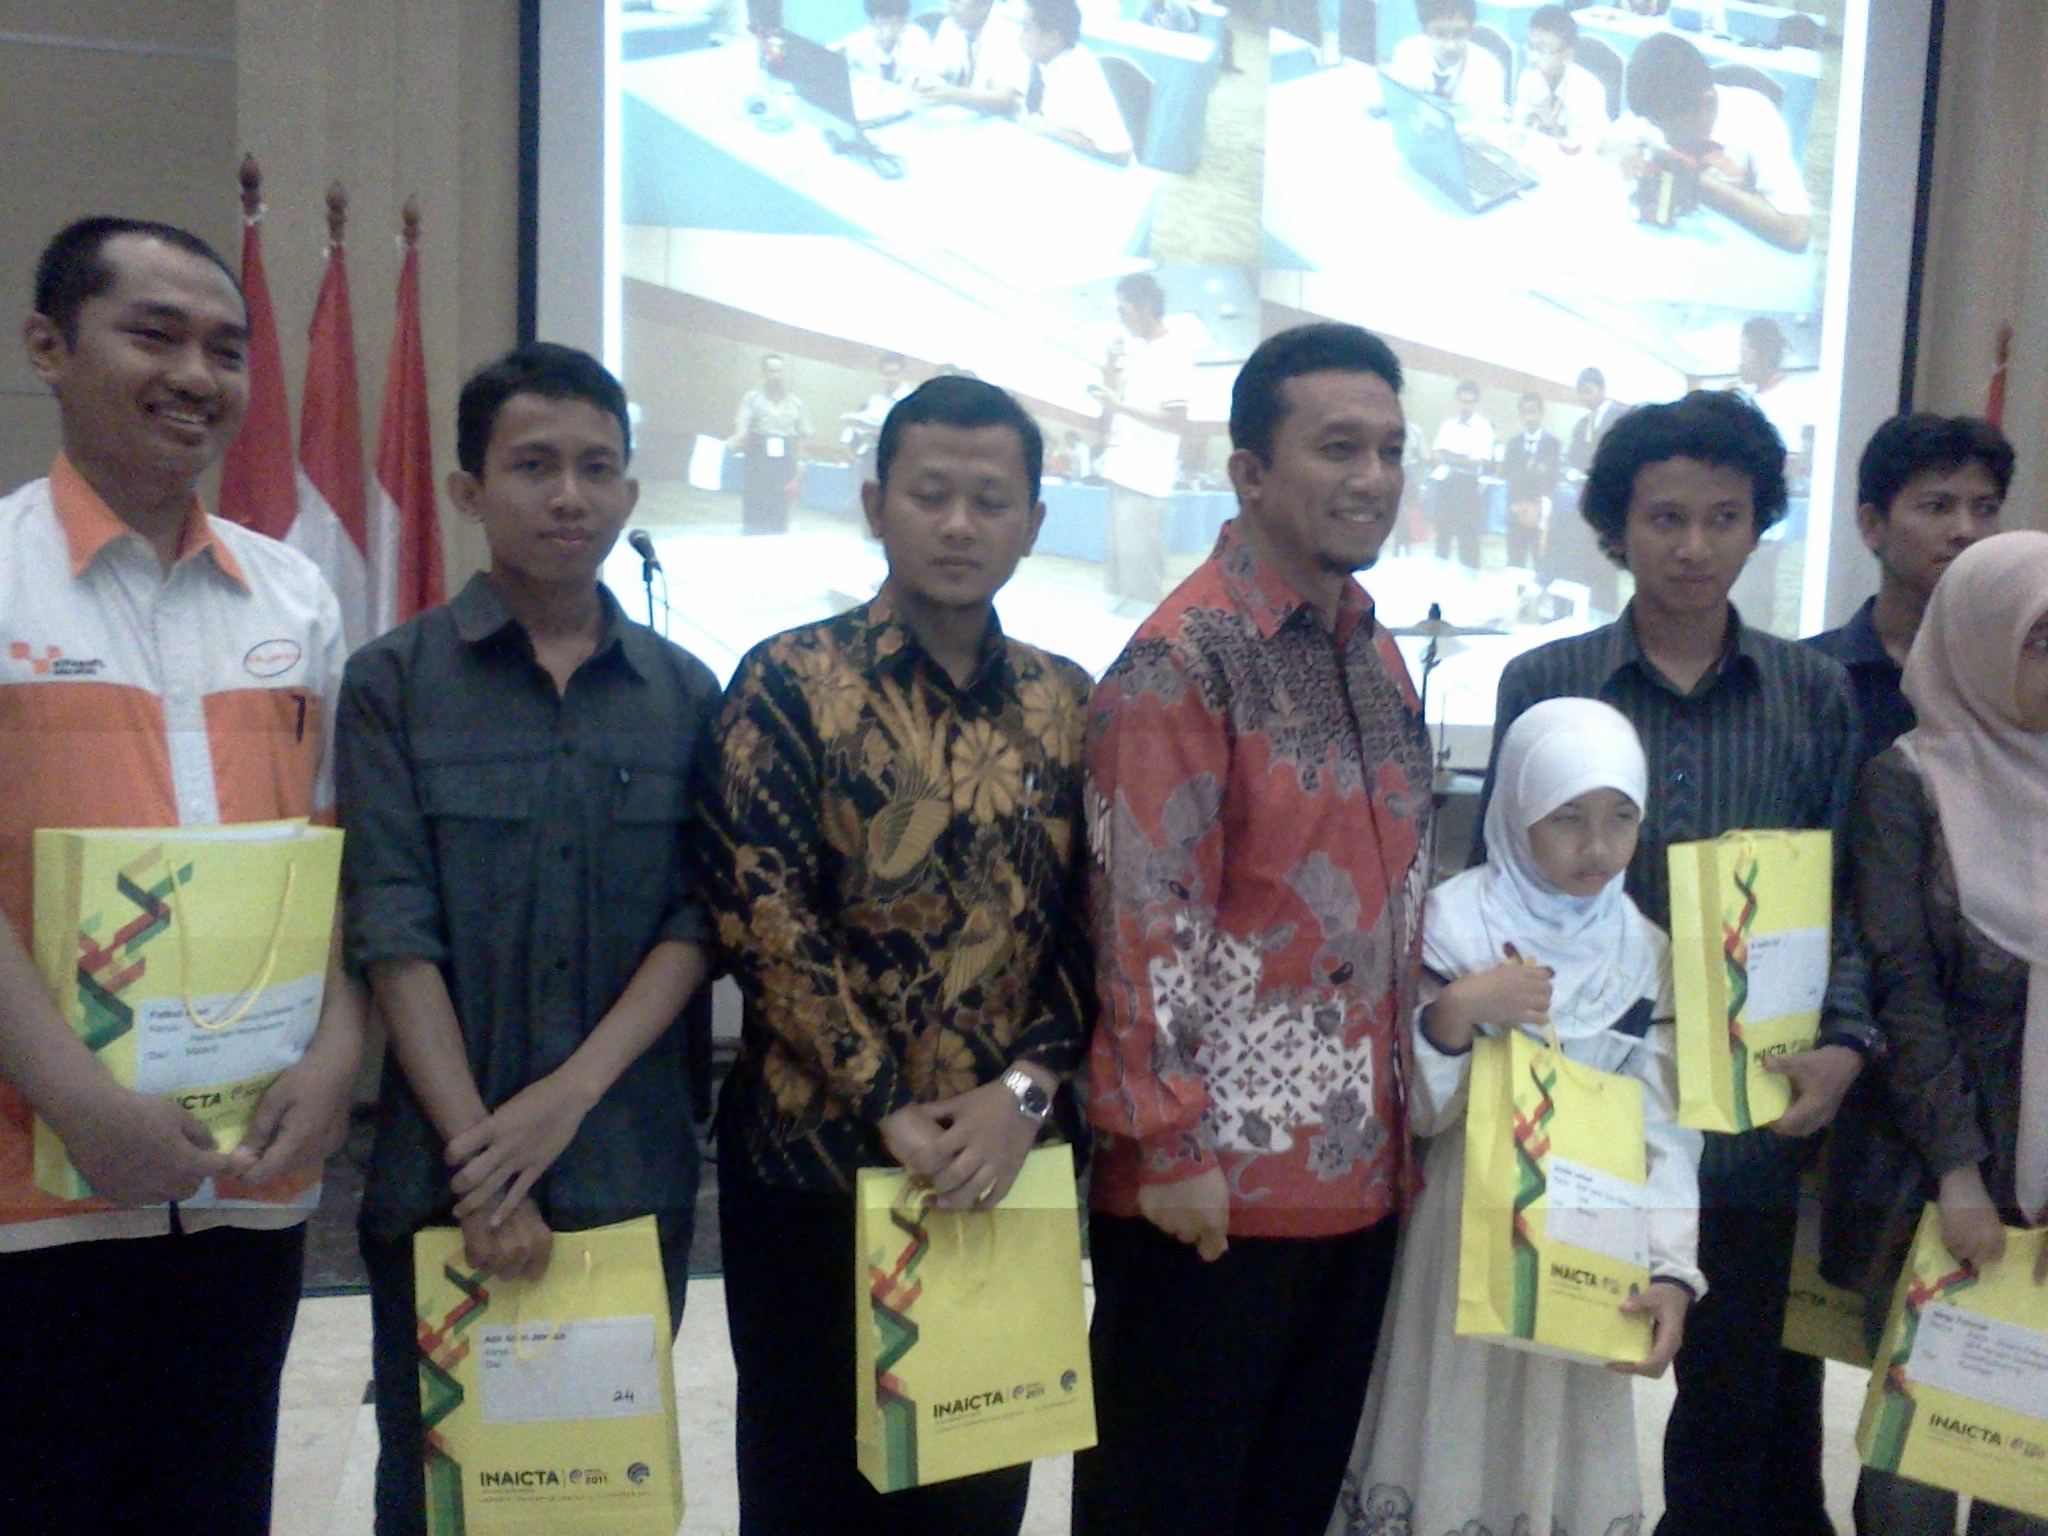 Juara 1 INAICTA 2011 Applicative Robot Category (Robot For Helping People from Natural Disaster)